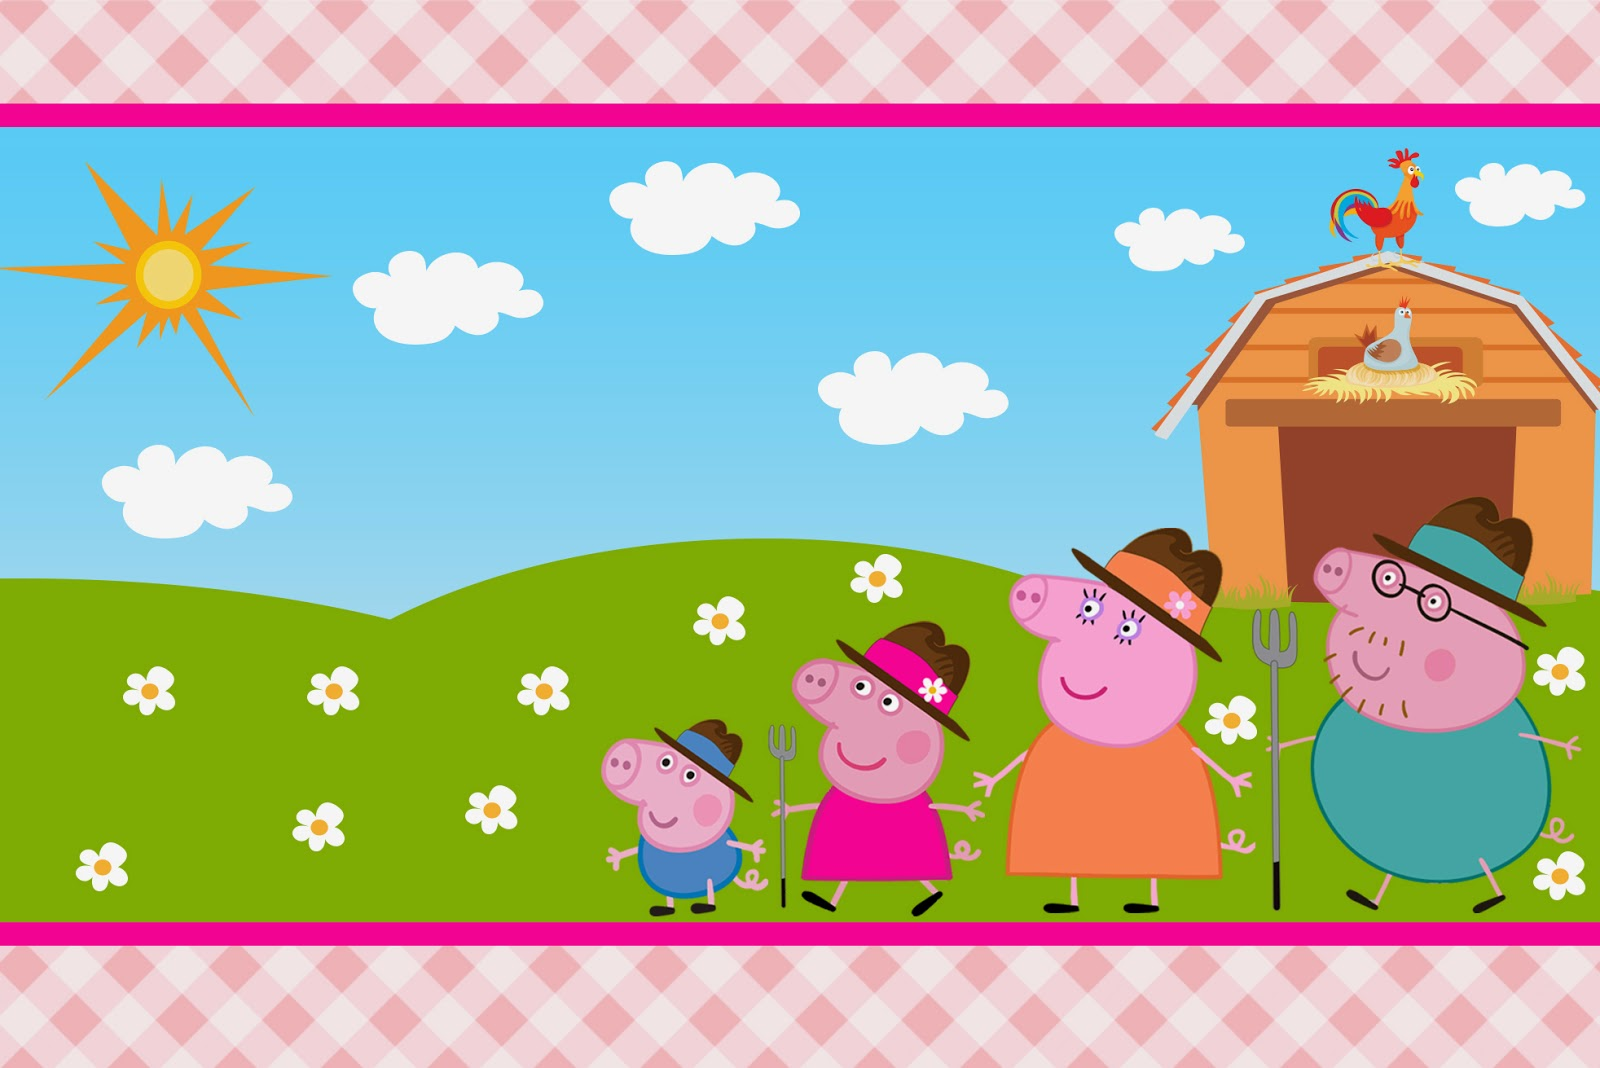 photograph about Peppa Pig Character Free Printable Images called Peppa Pig at the Farm: Absolutely free Printable Invites. - Oh My